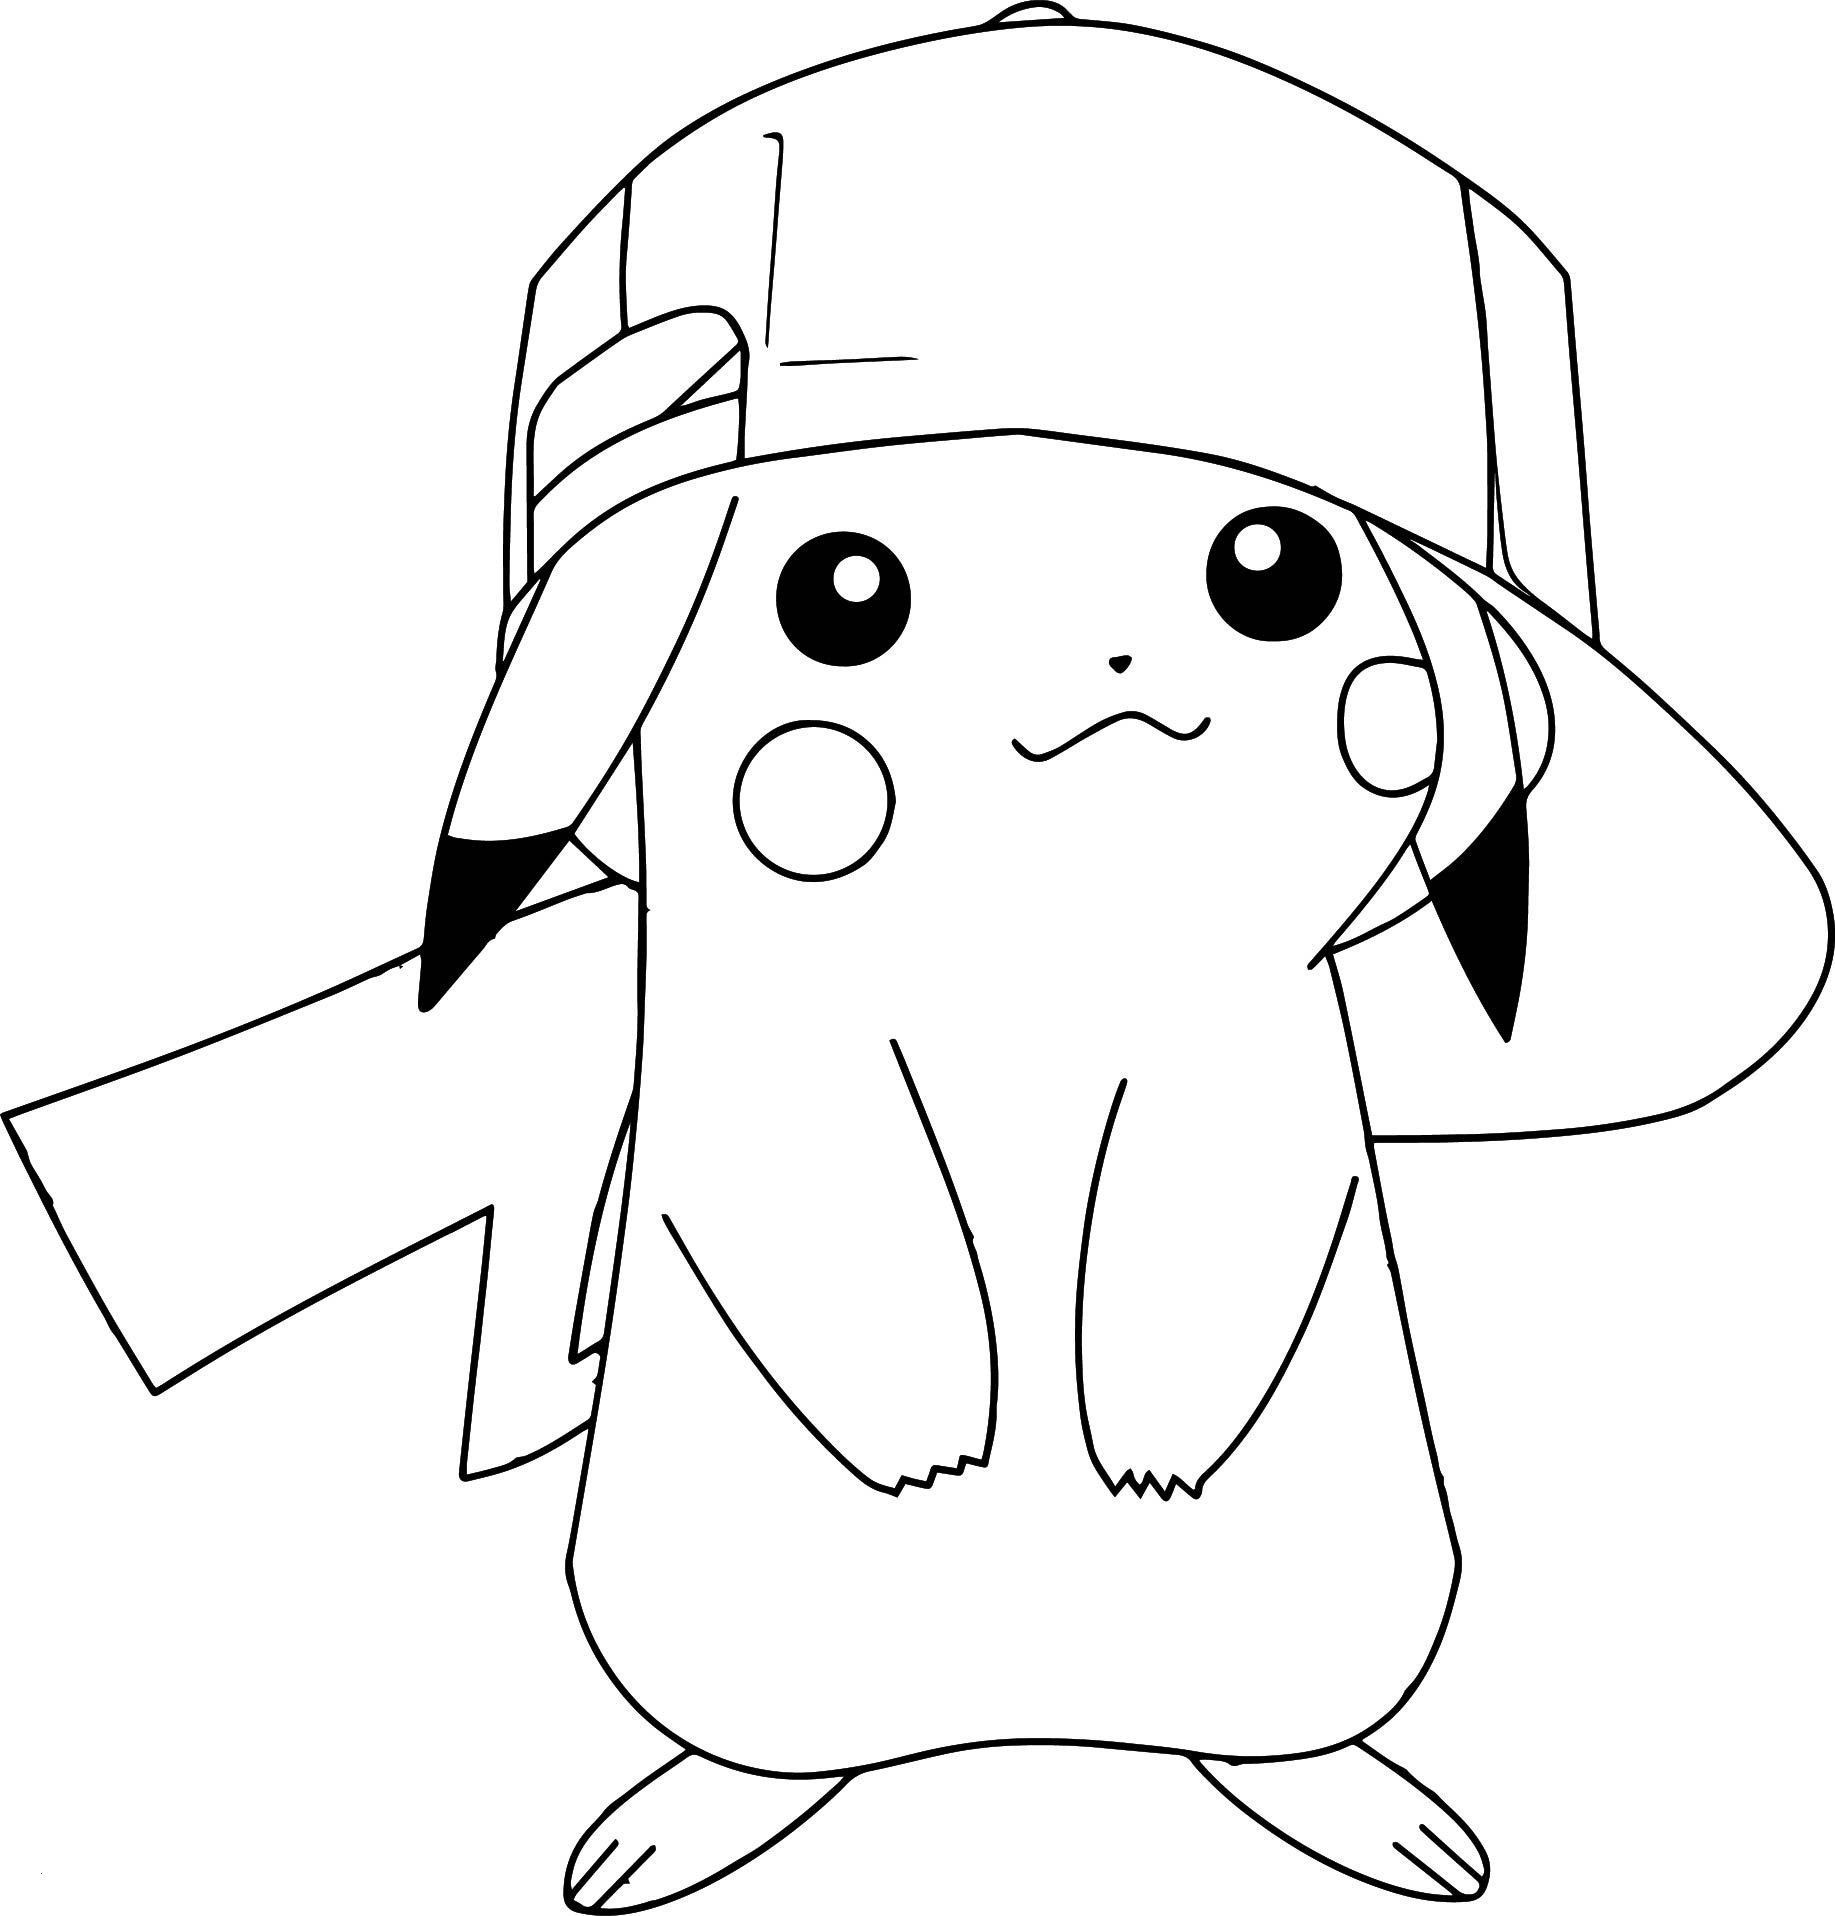 Pokemon Coloring Pages Pikachu Pikachu Coloring Page Cartoon